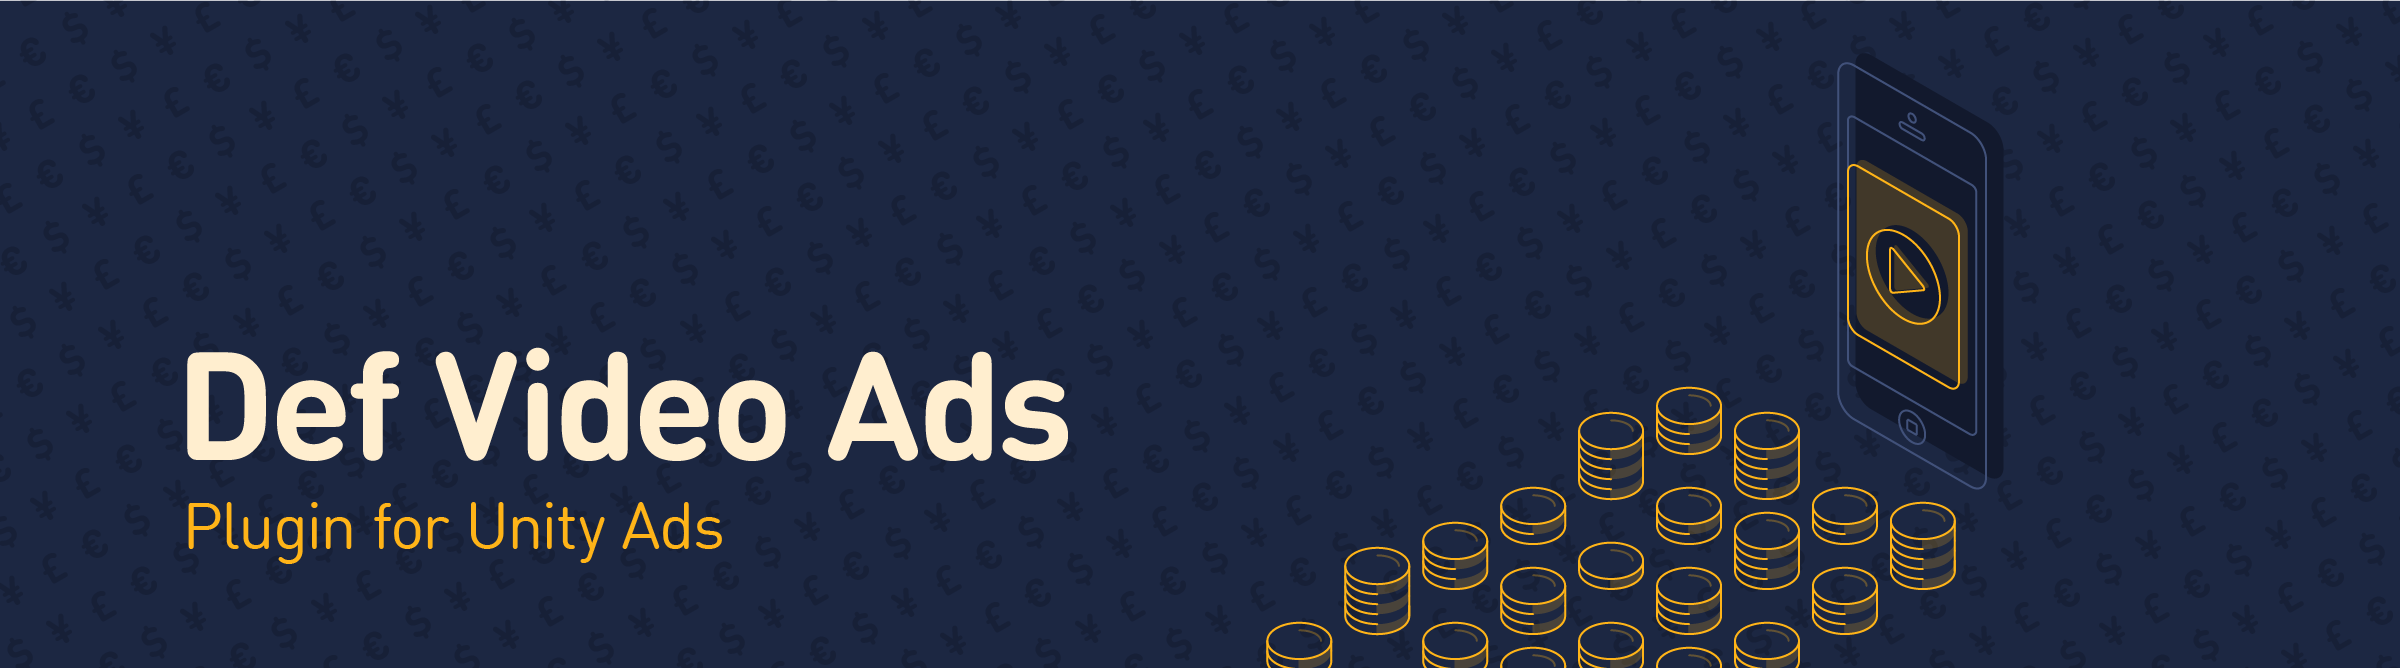 DefVideoAds (plugin for Unity ADS)  Video ADS native extension - The